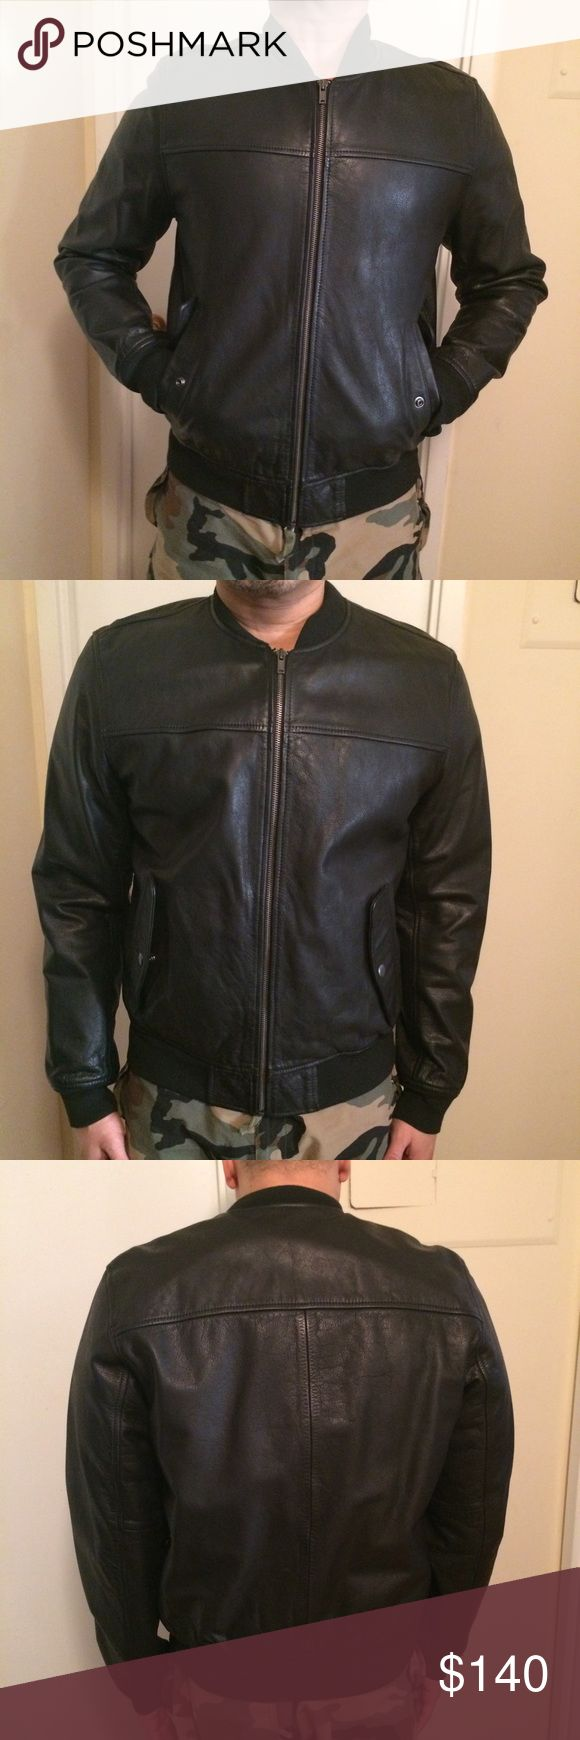 Gap Men's leather bomber jacket 100% leather with cotton lining. Baseball collar, with rib knit cuffs and  hem. Classic bomber style, zipper closure with 2 front flap pockets with snaps. Worn only a few times, in very good condition. GAP Jackets & Coats